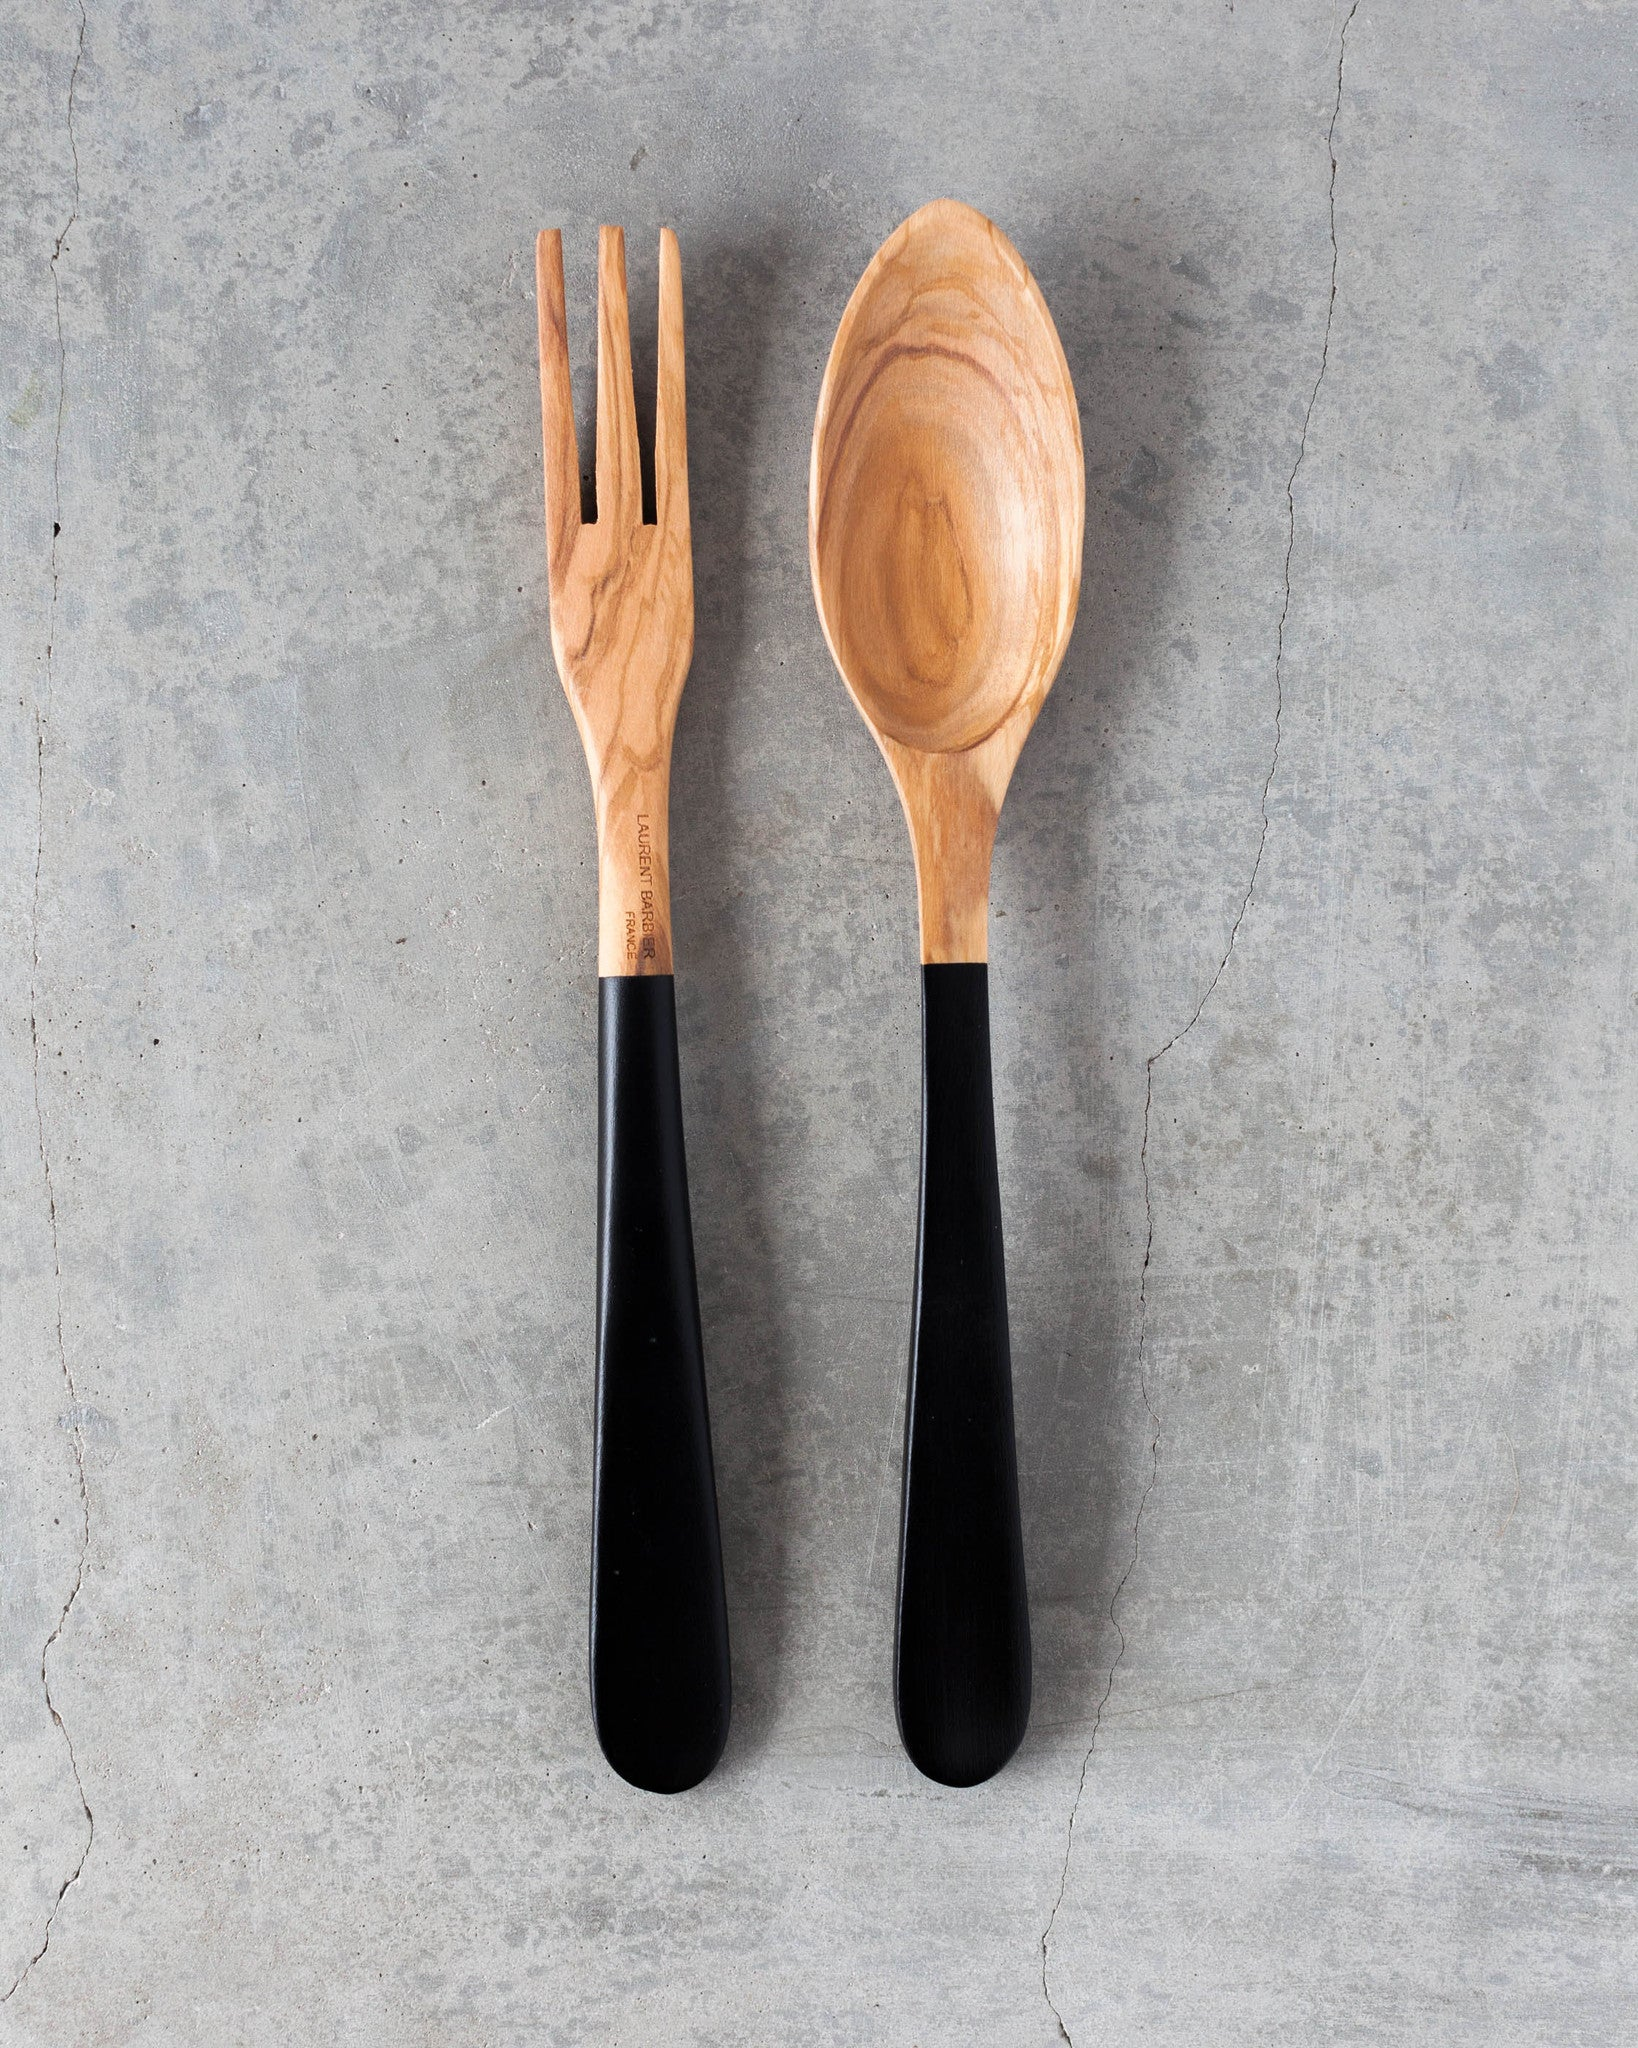 Olive Wood Demi-Baguette Server Set Large in Black